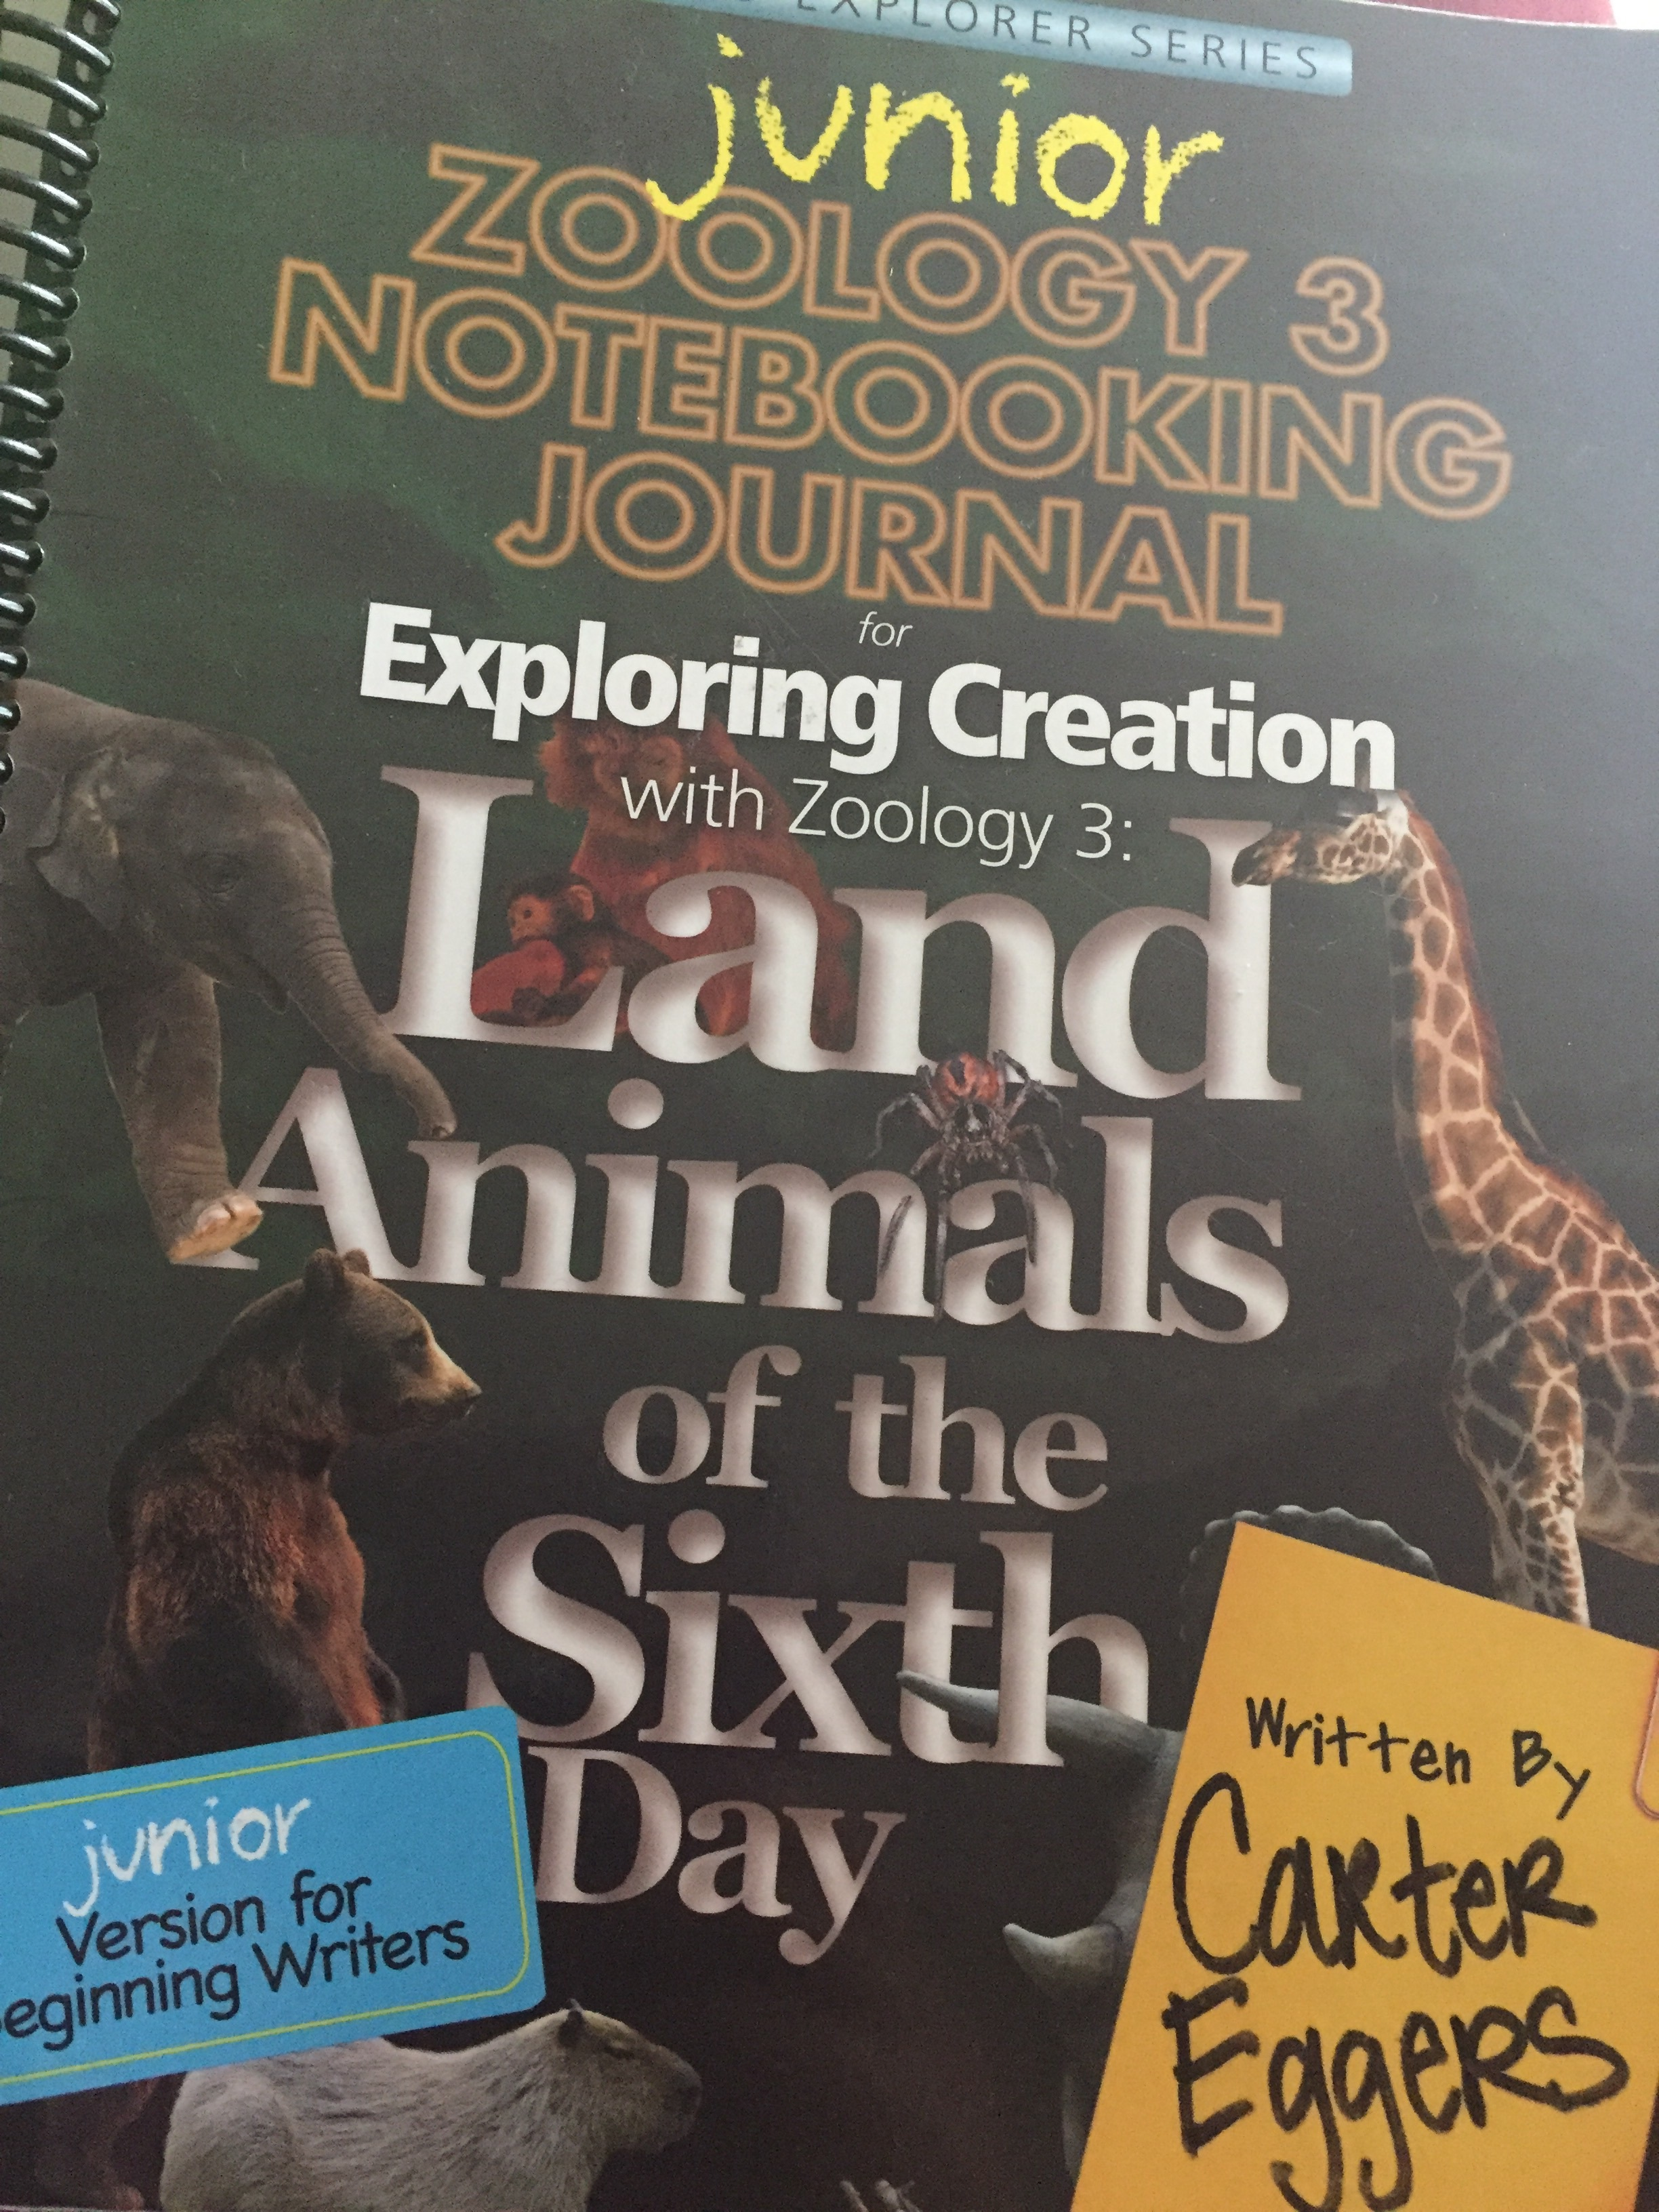 You can even buy these very cool large spiral science notebooks that pair with the text for additional science fun. Very cool.